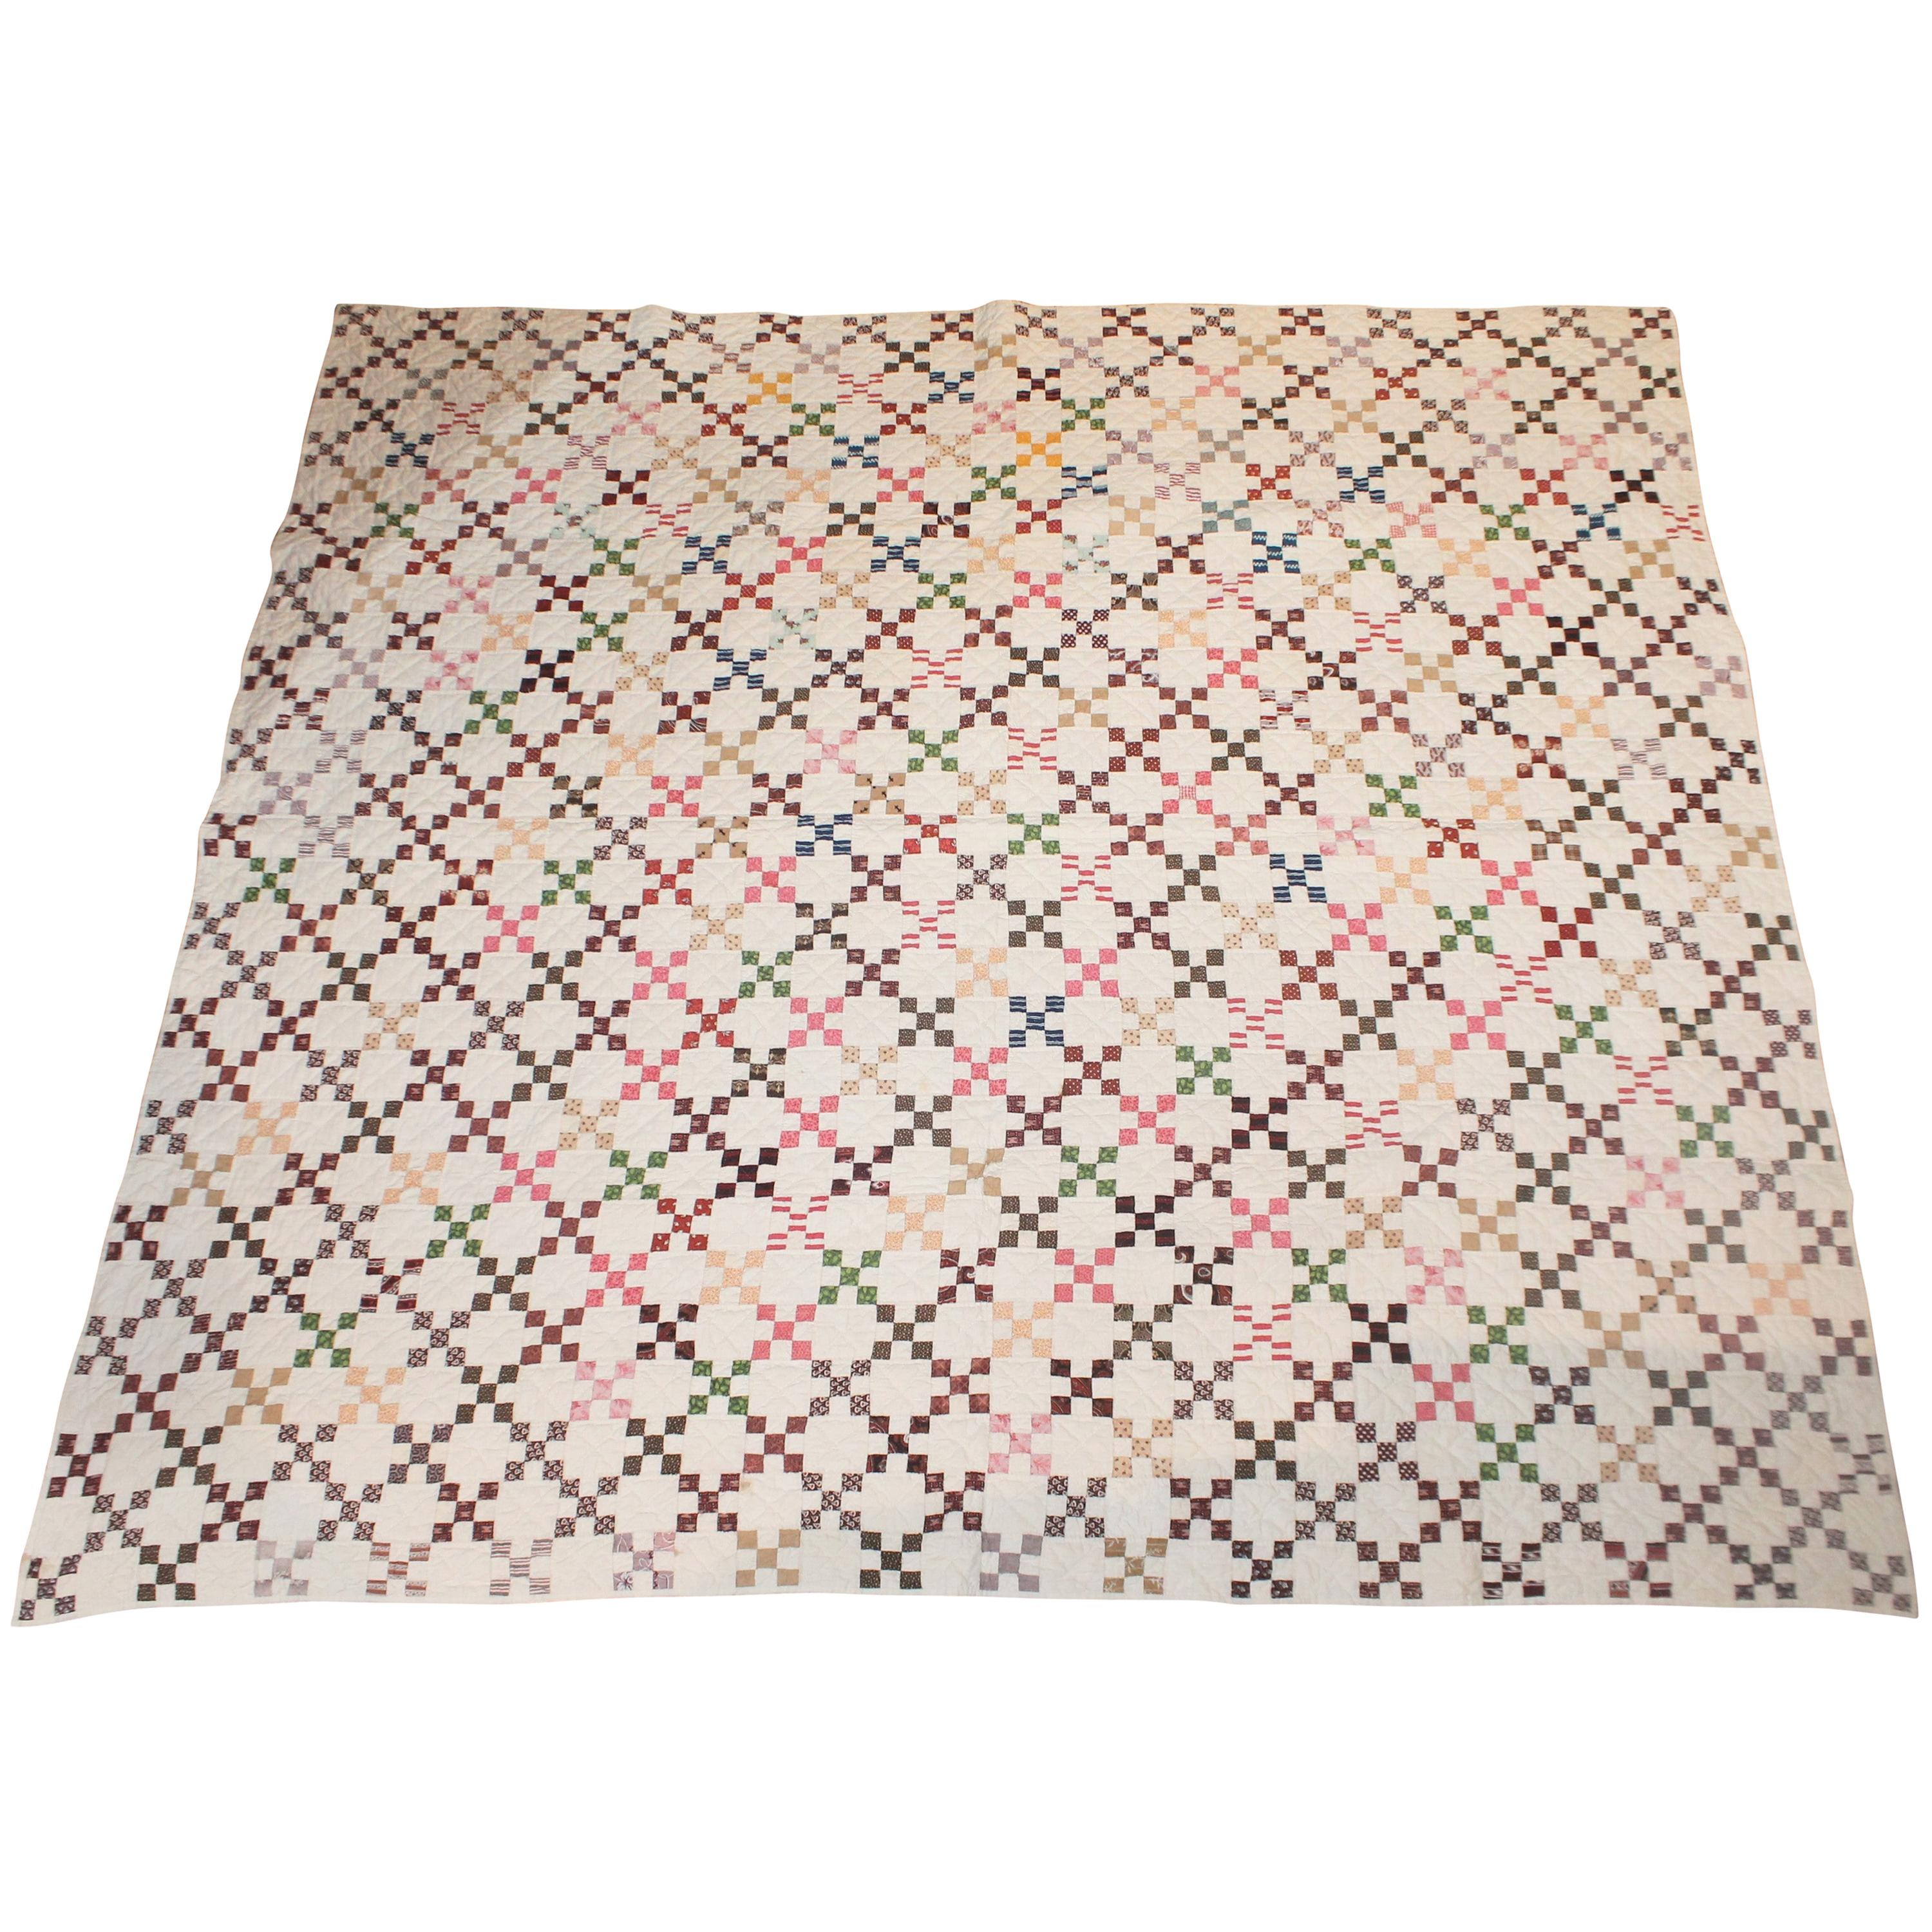 19th Century Mini Postage Stamp Chain Quilt from Pennsylvania